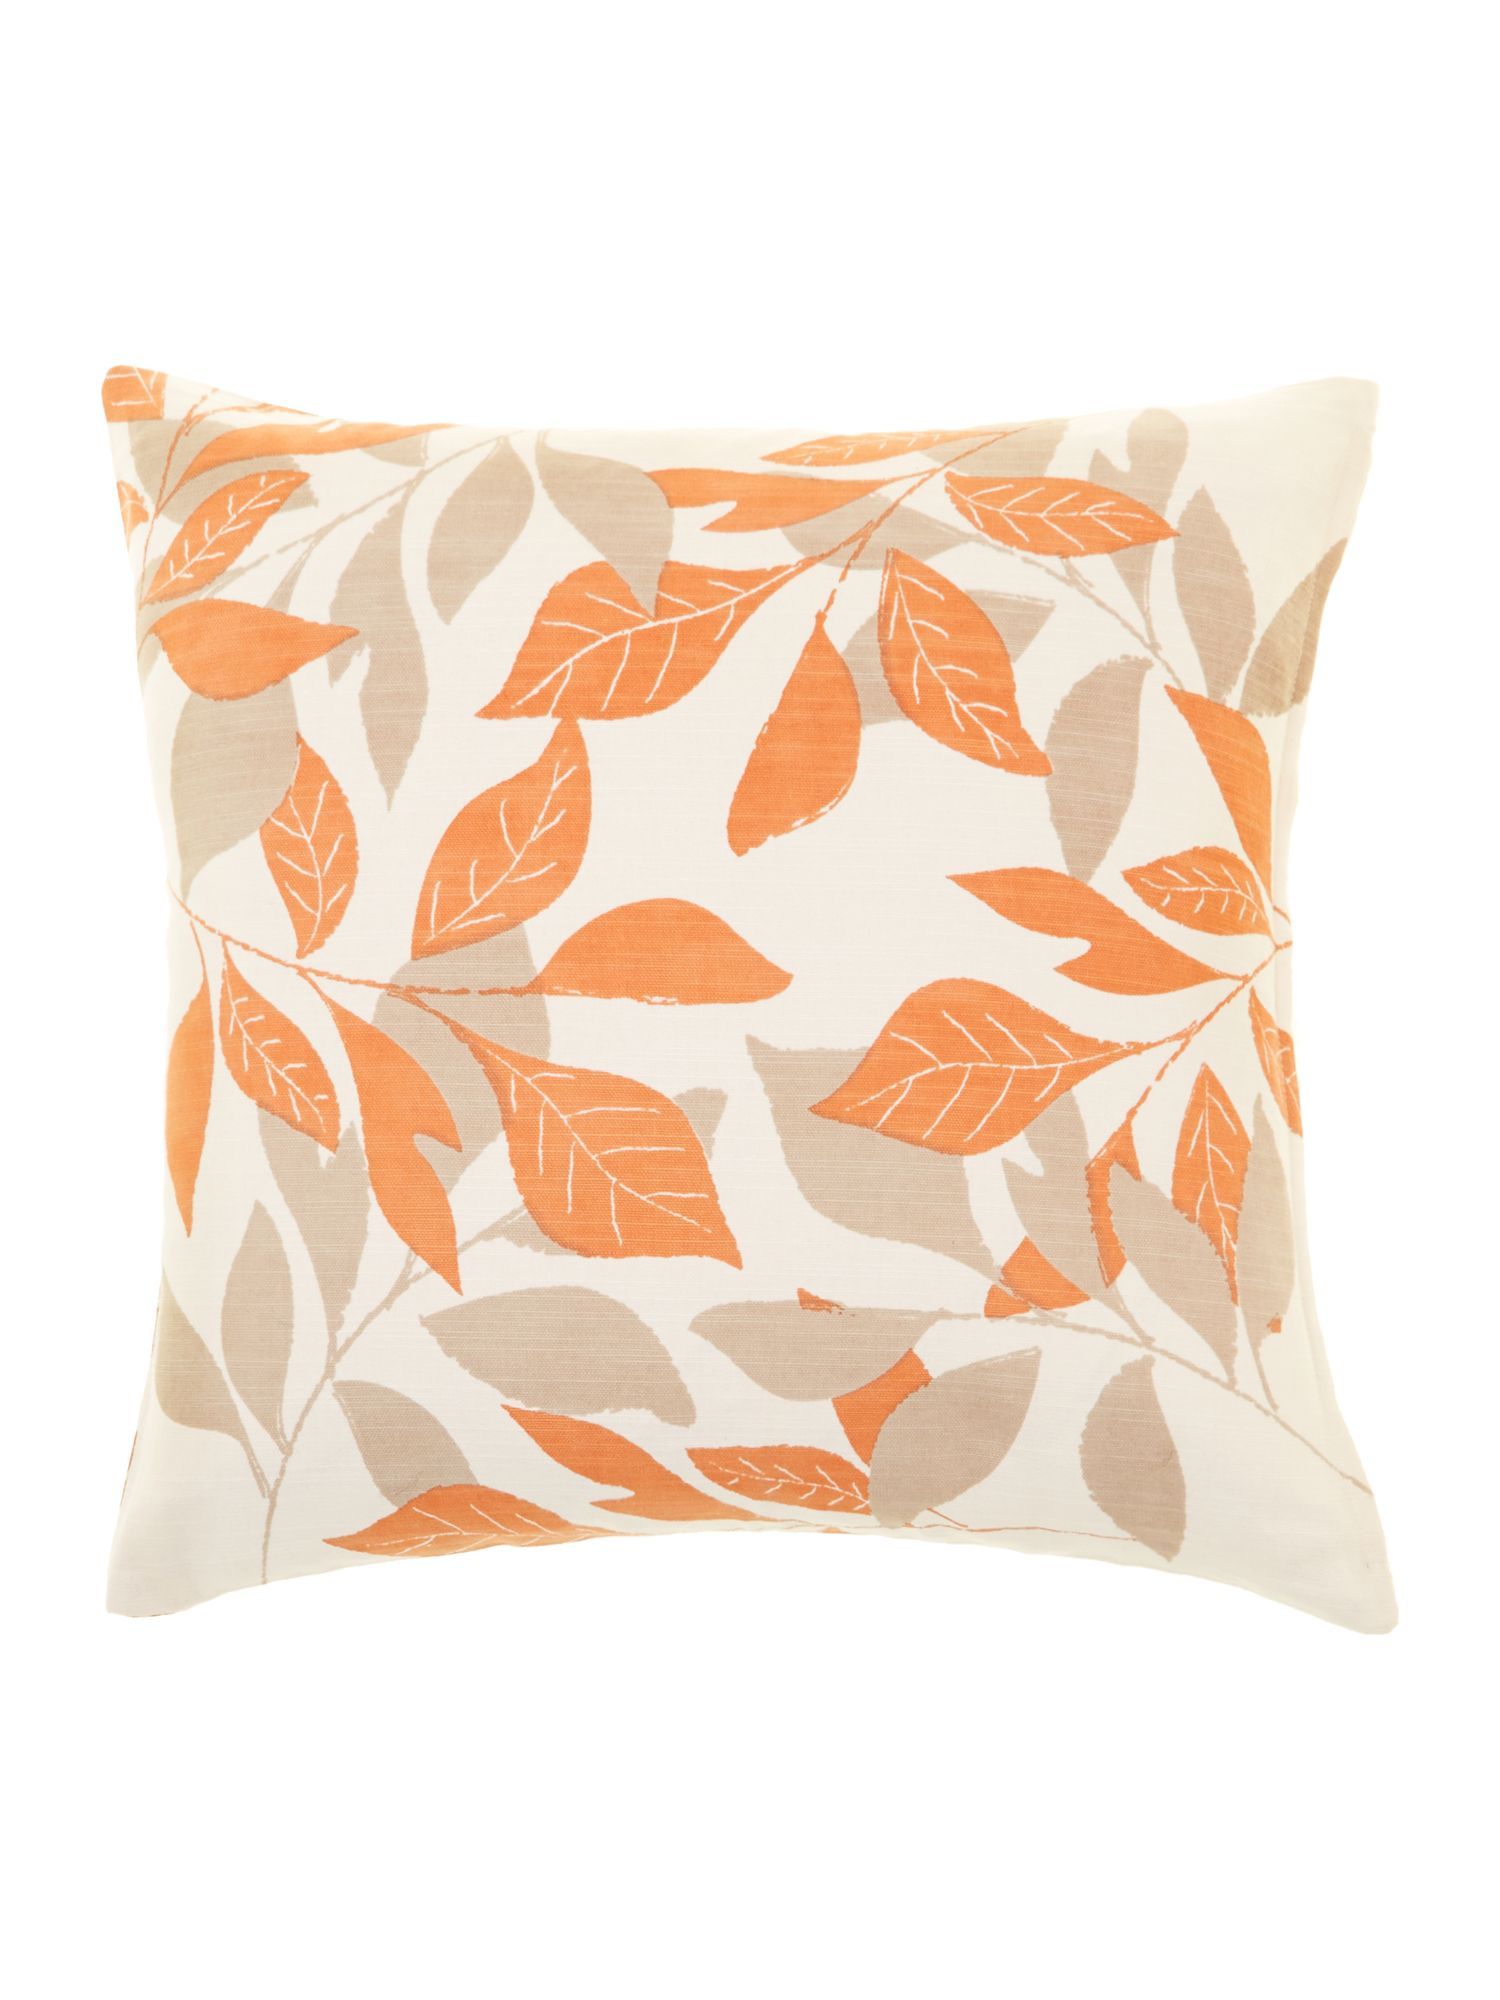 Leaf design cotton cushion, Orange